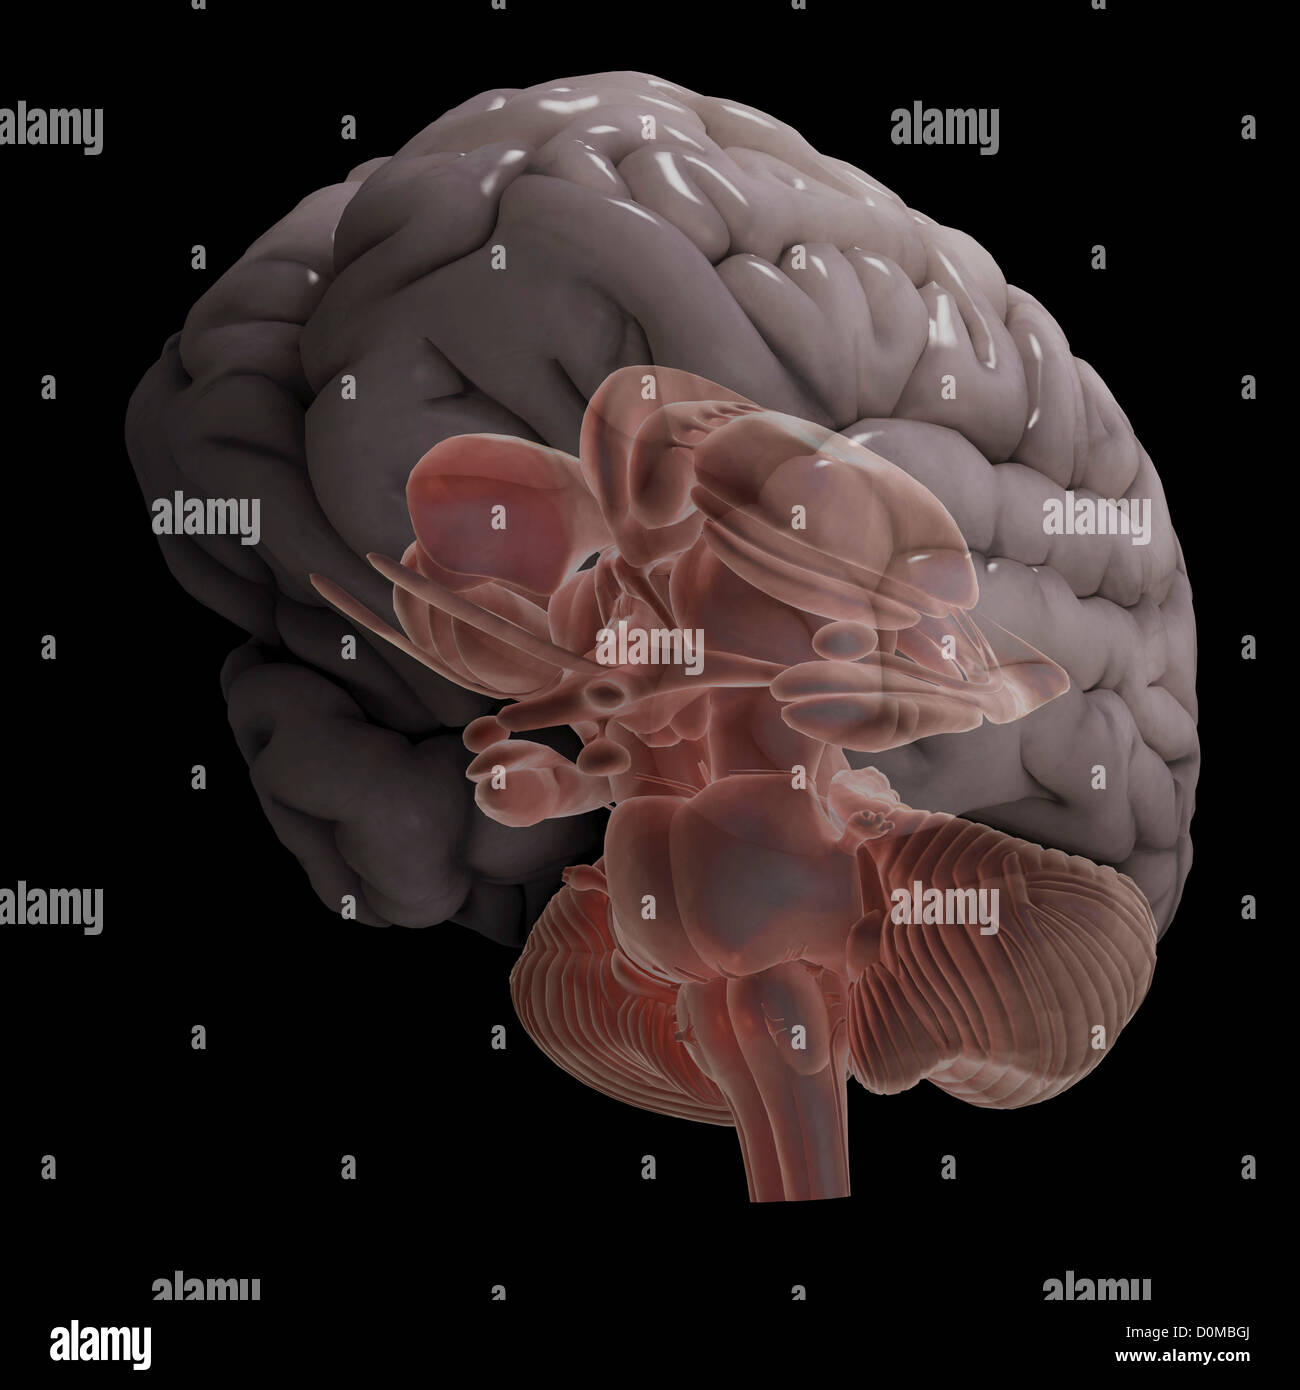 hight resolution of a stylized diagram of a human brain showing the brain stem